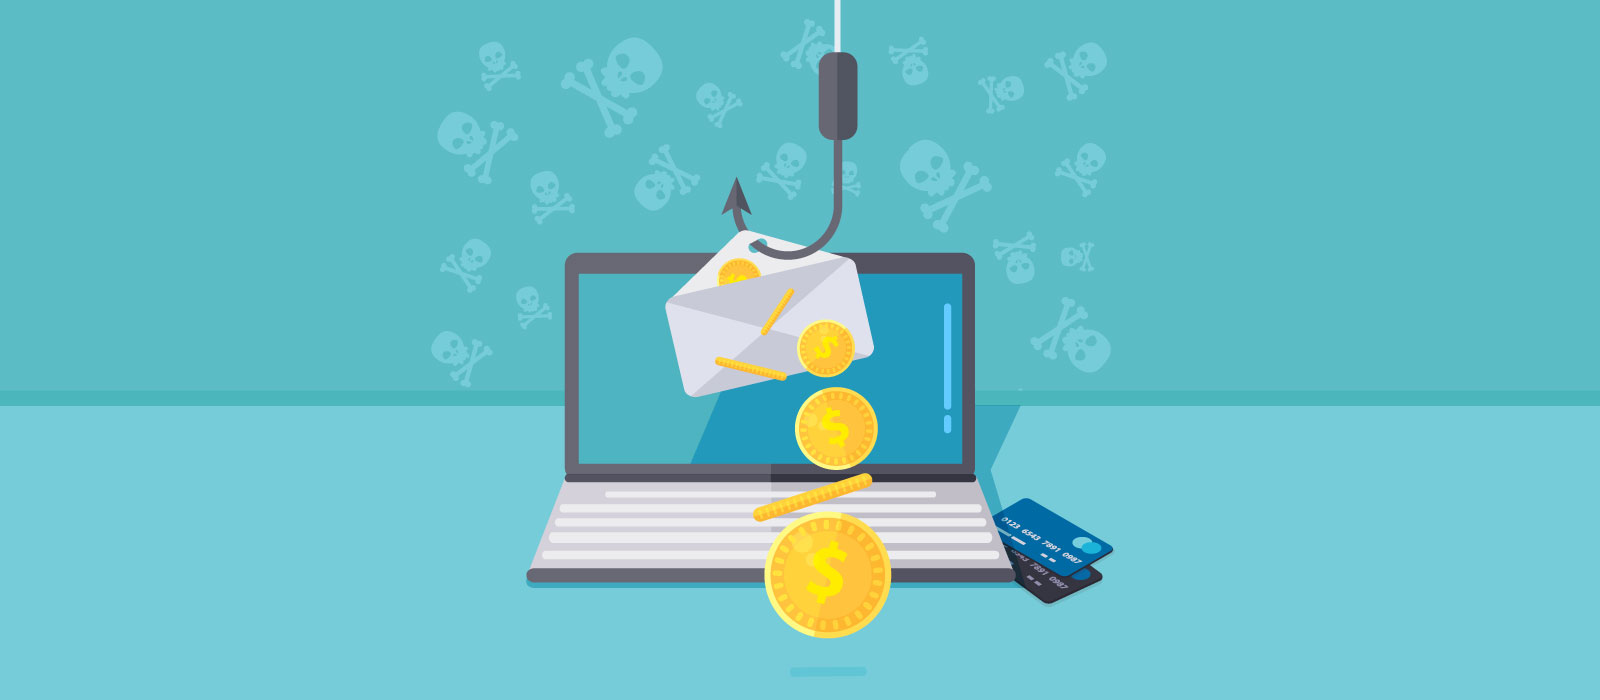 Illustration of phishing: an envelope with money fished up with fishing rod from laptop.